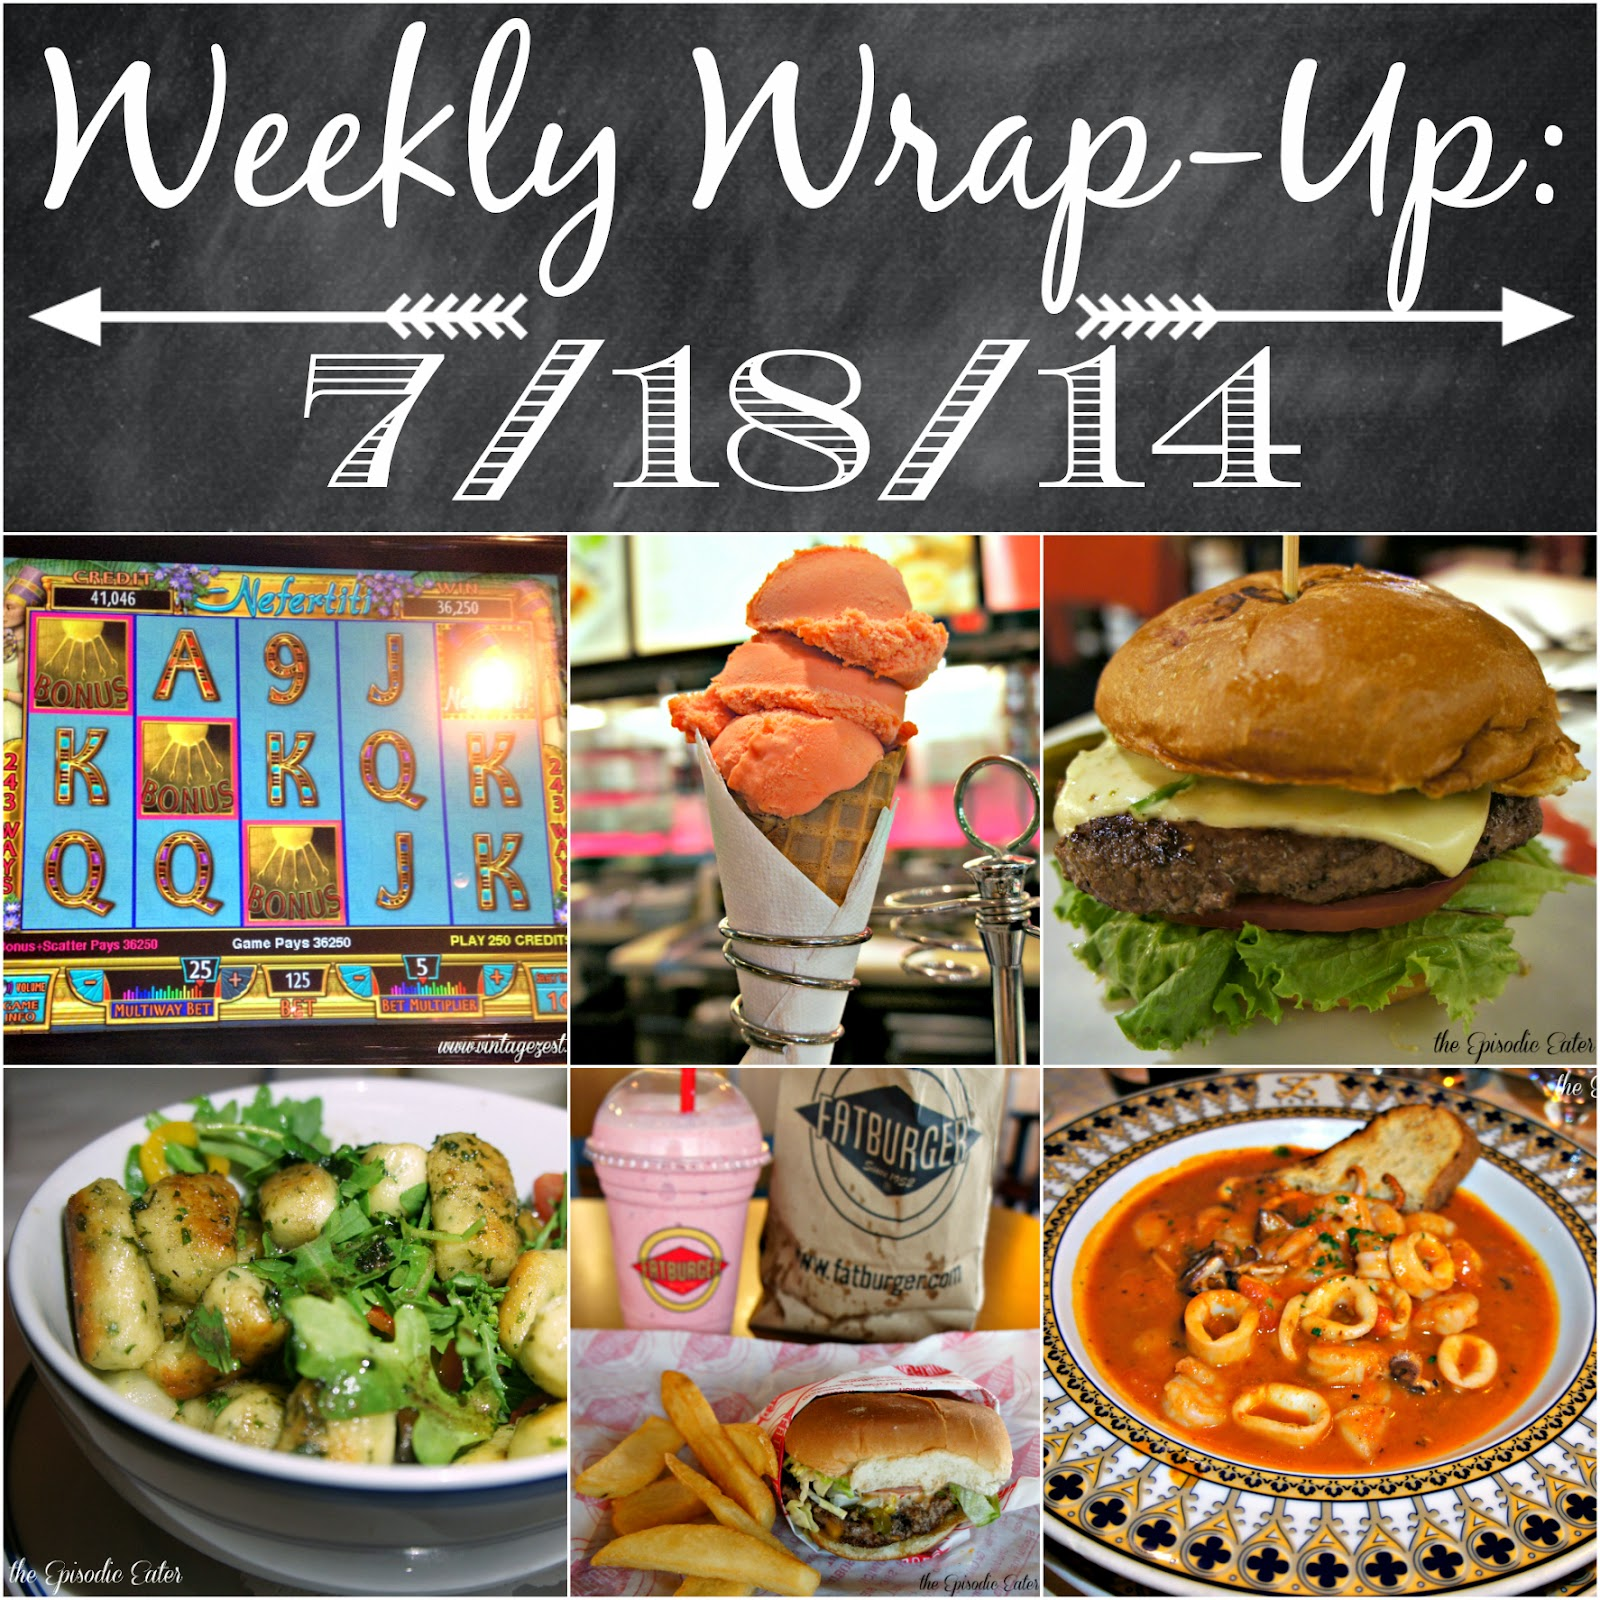 Weekly Wrap-Up on Diane's Vintage Zest!